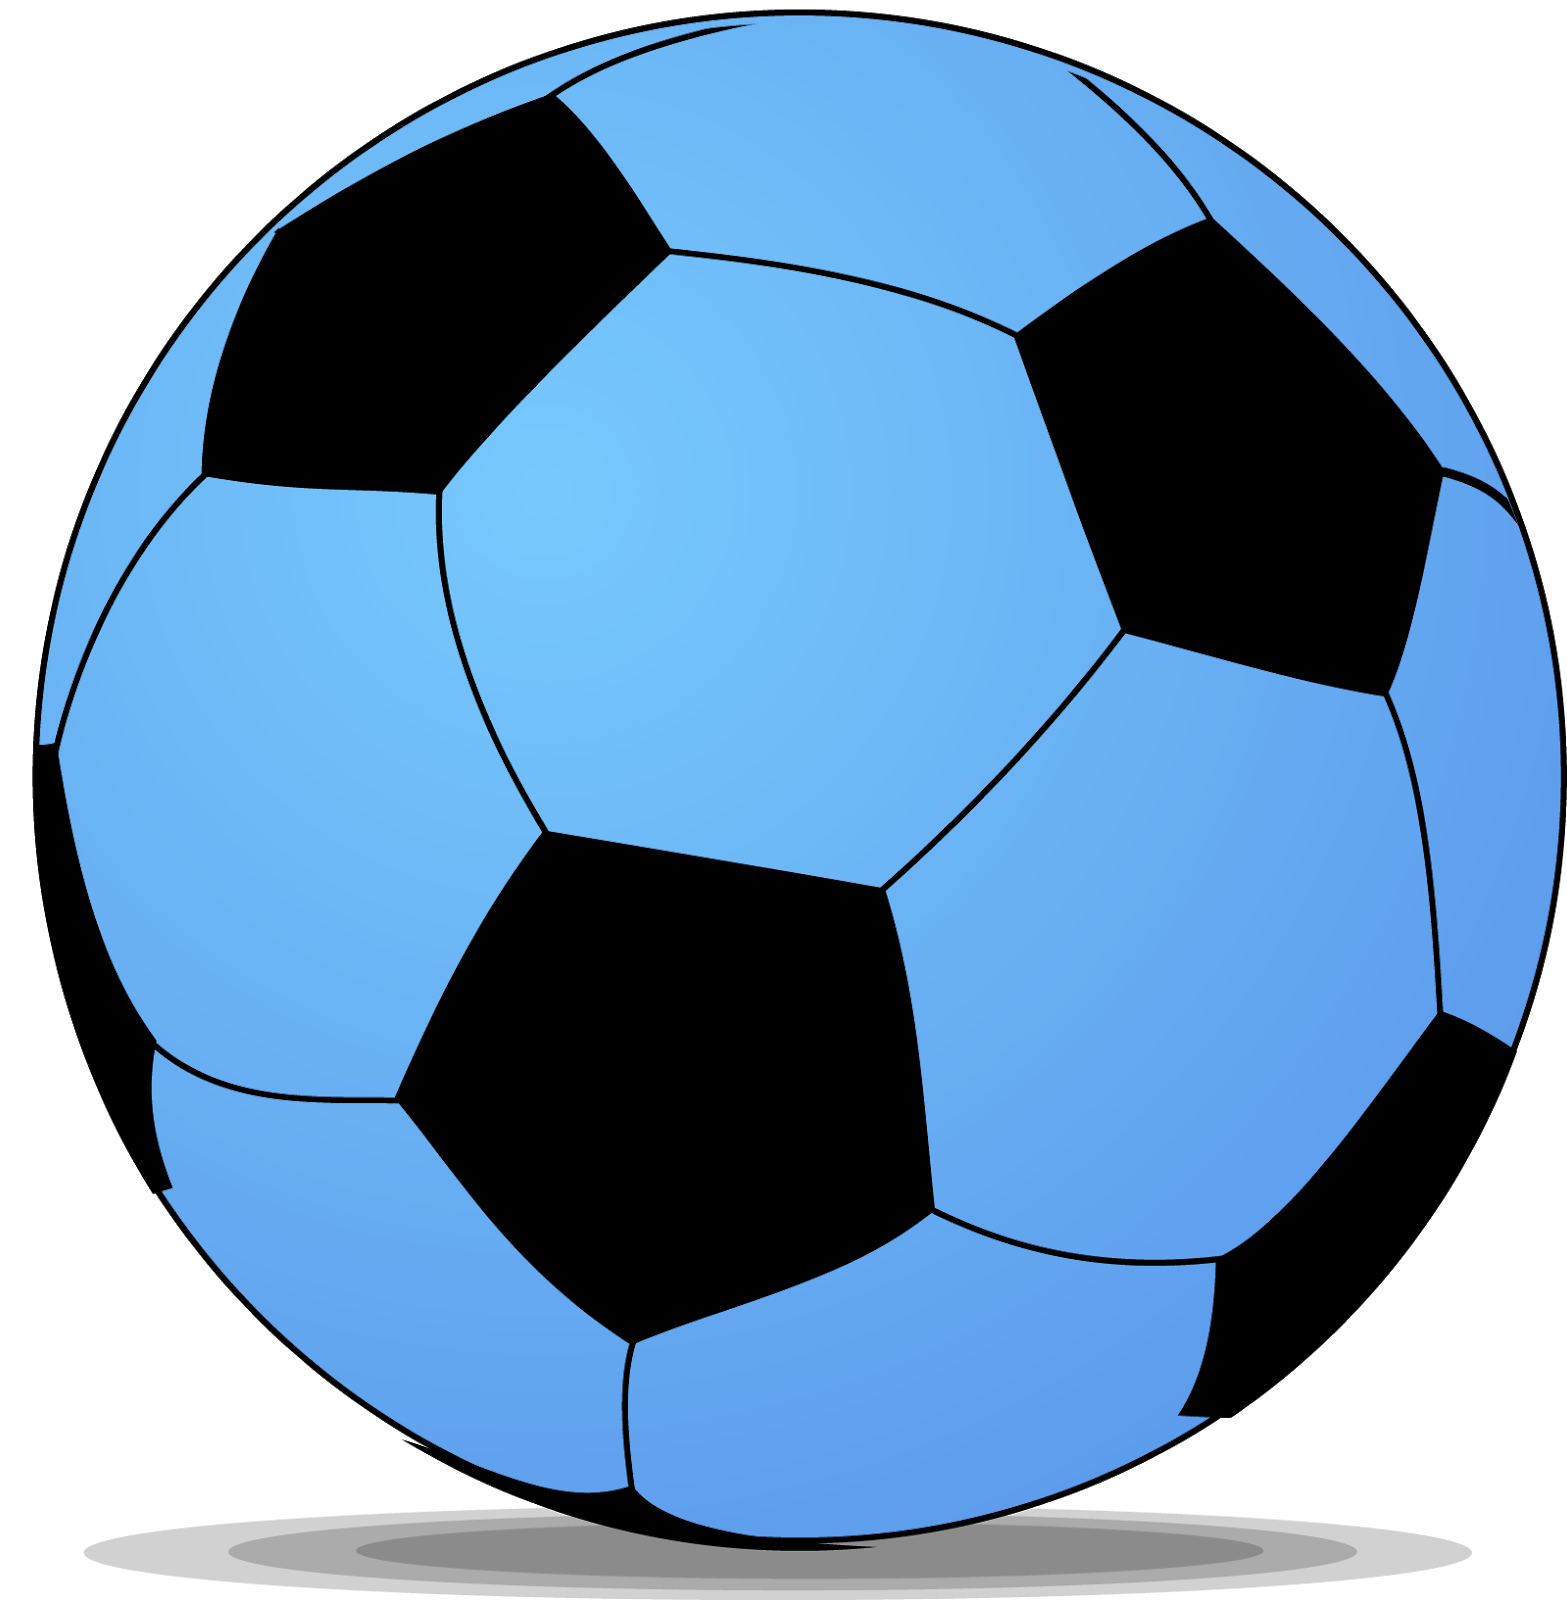 download icon soccer ball svg eps png psd ai vector color free - el